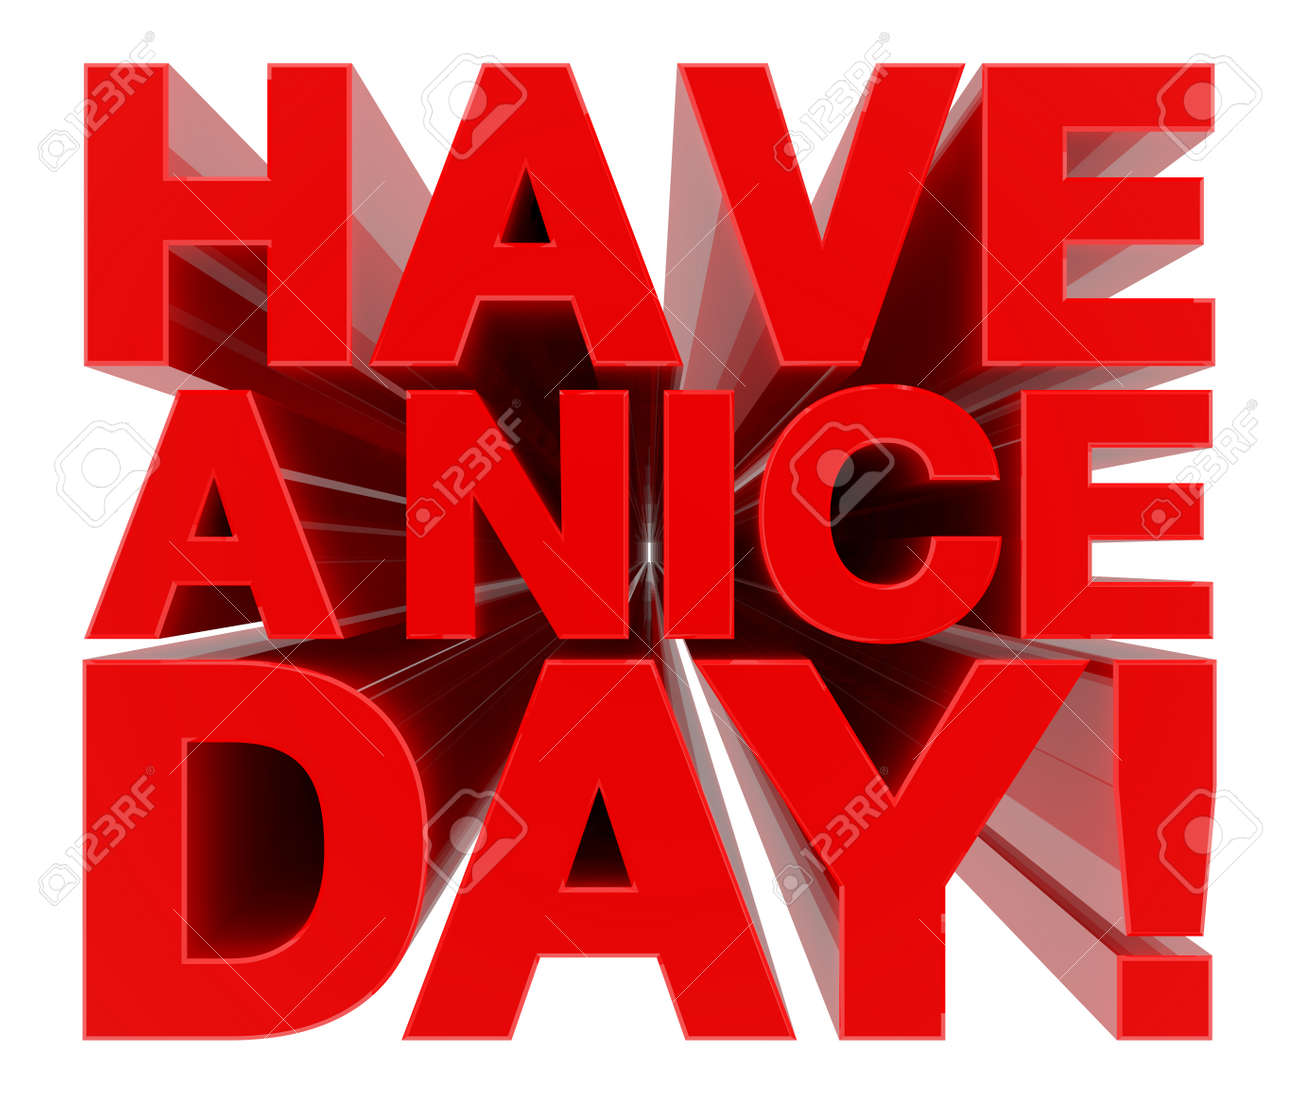 HAVE A NICE DAY ! word on white background 3d rendering - 131014998